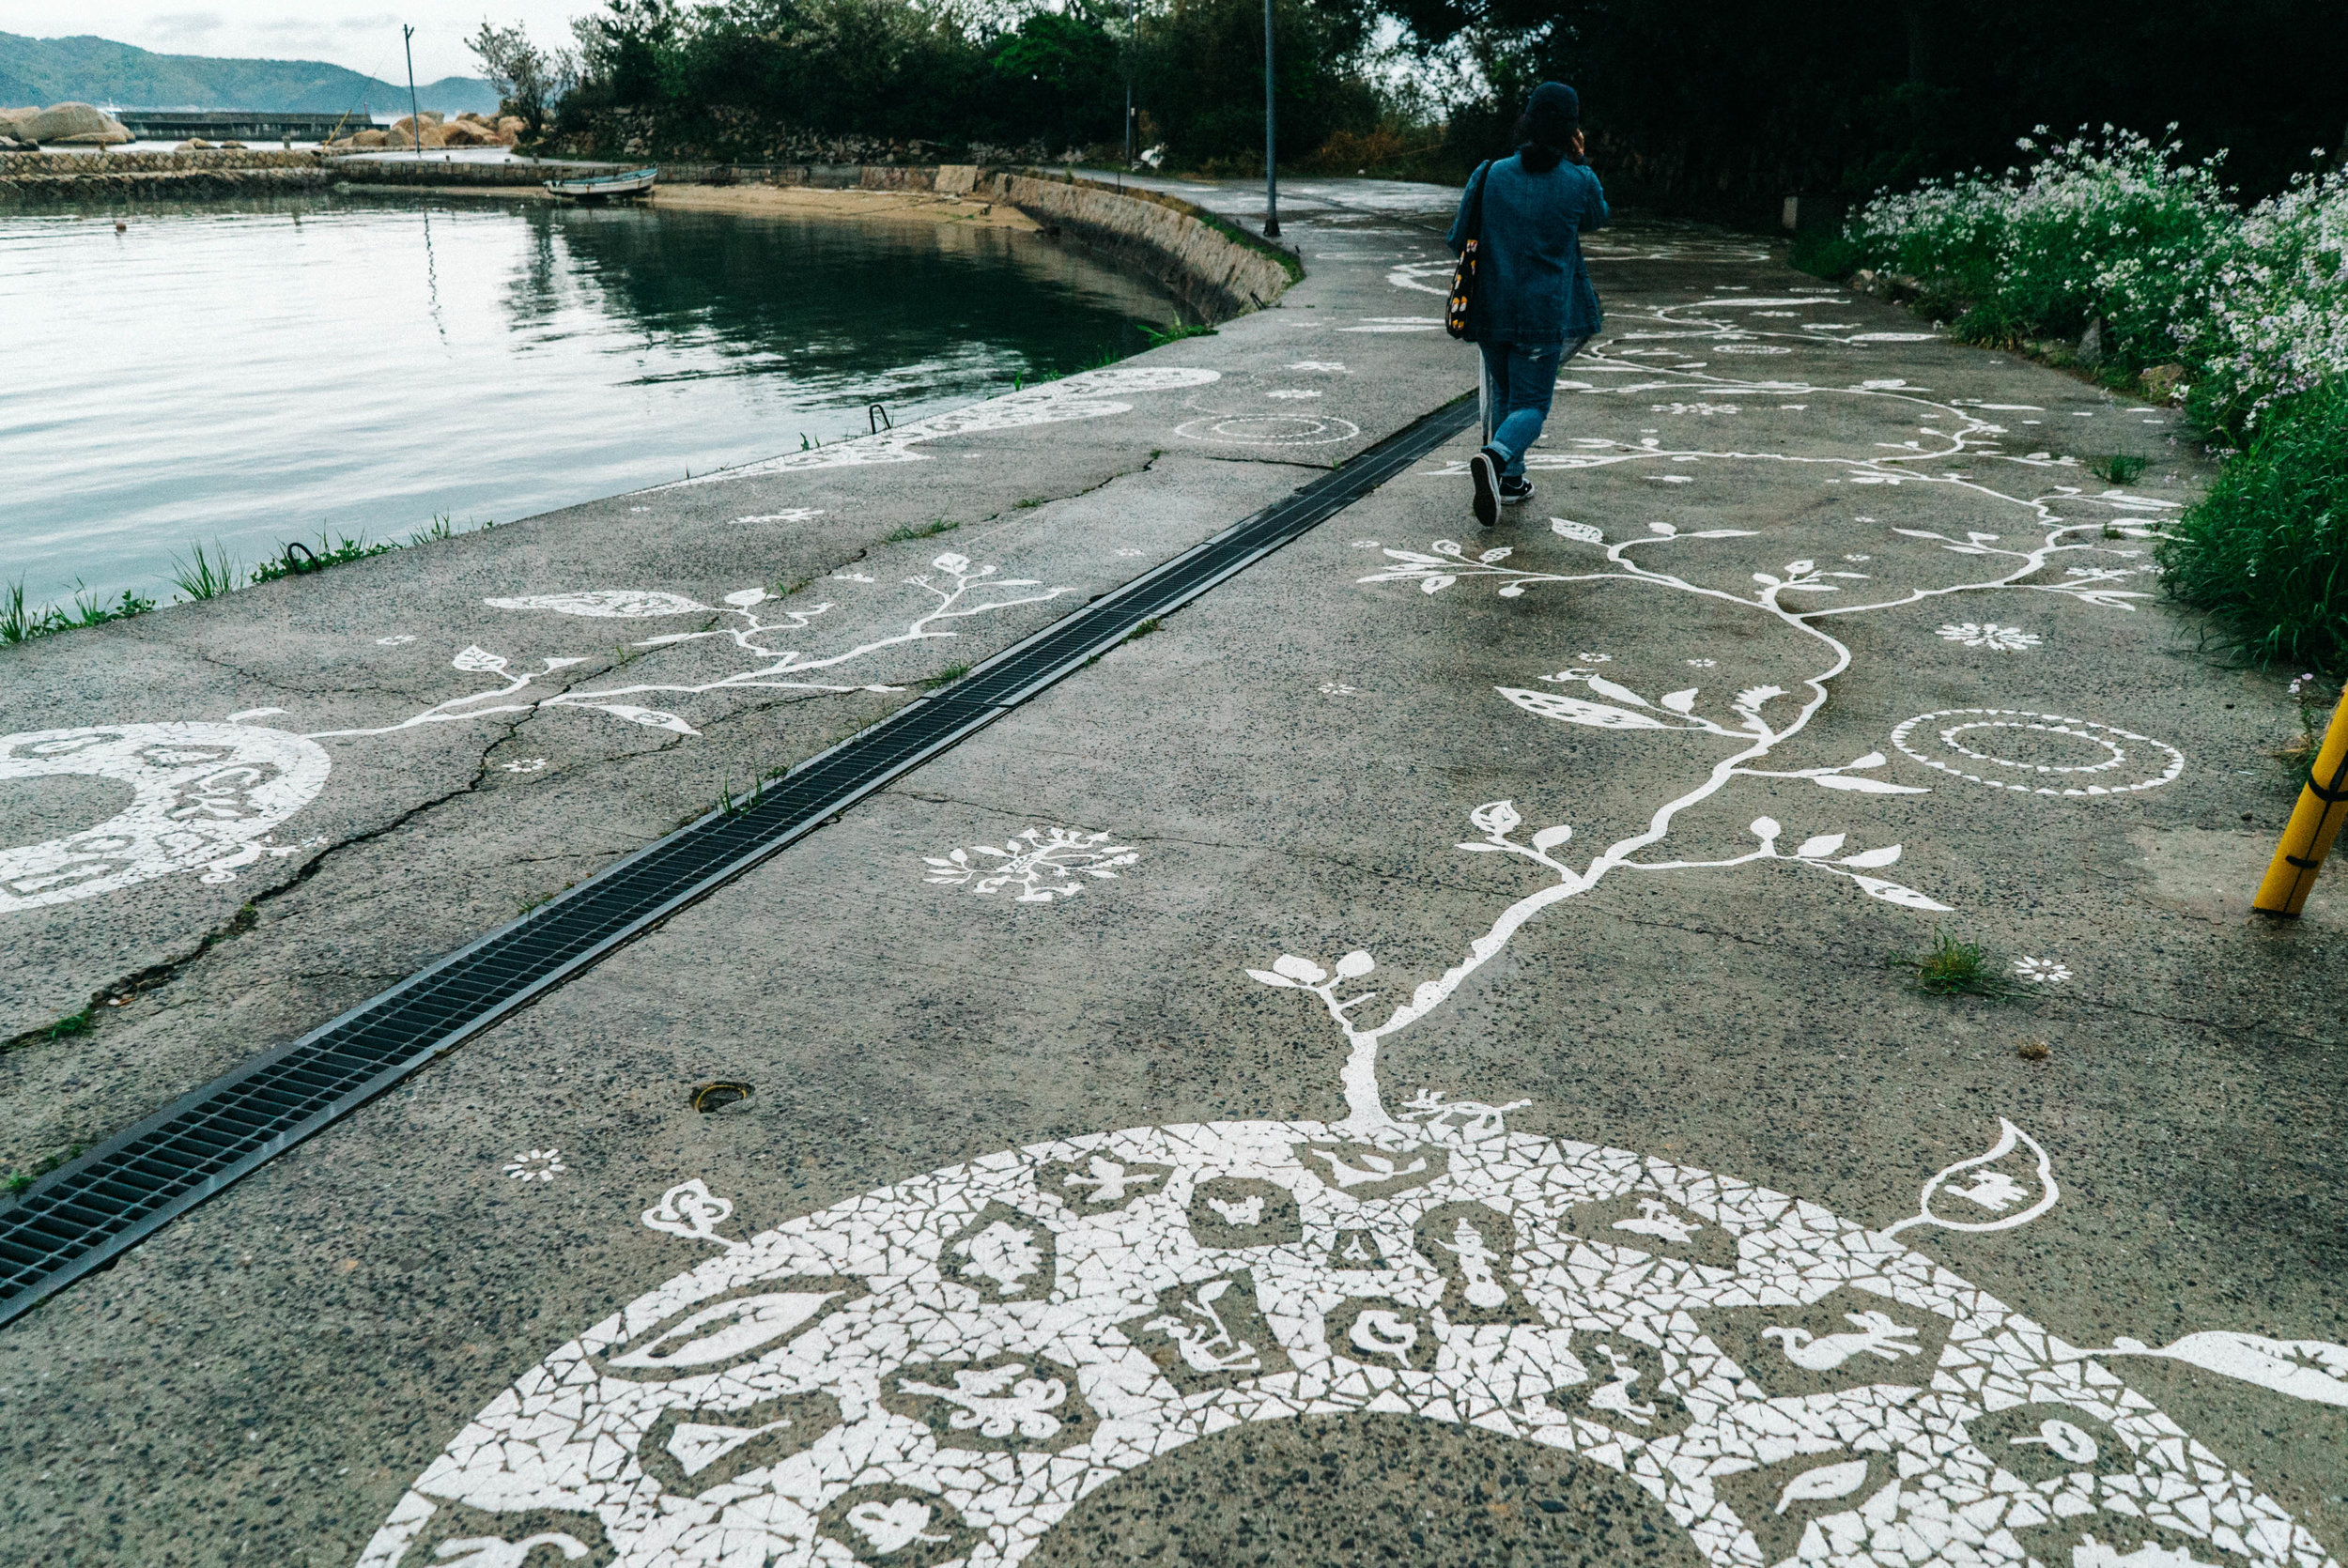 art along the pavement near Inujima port